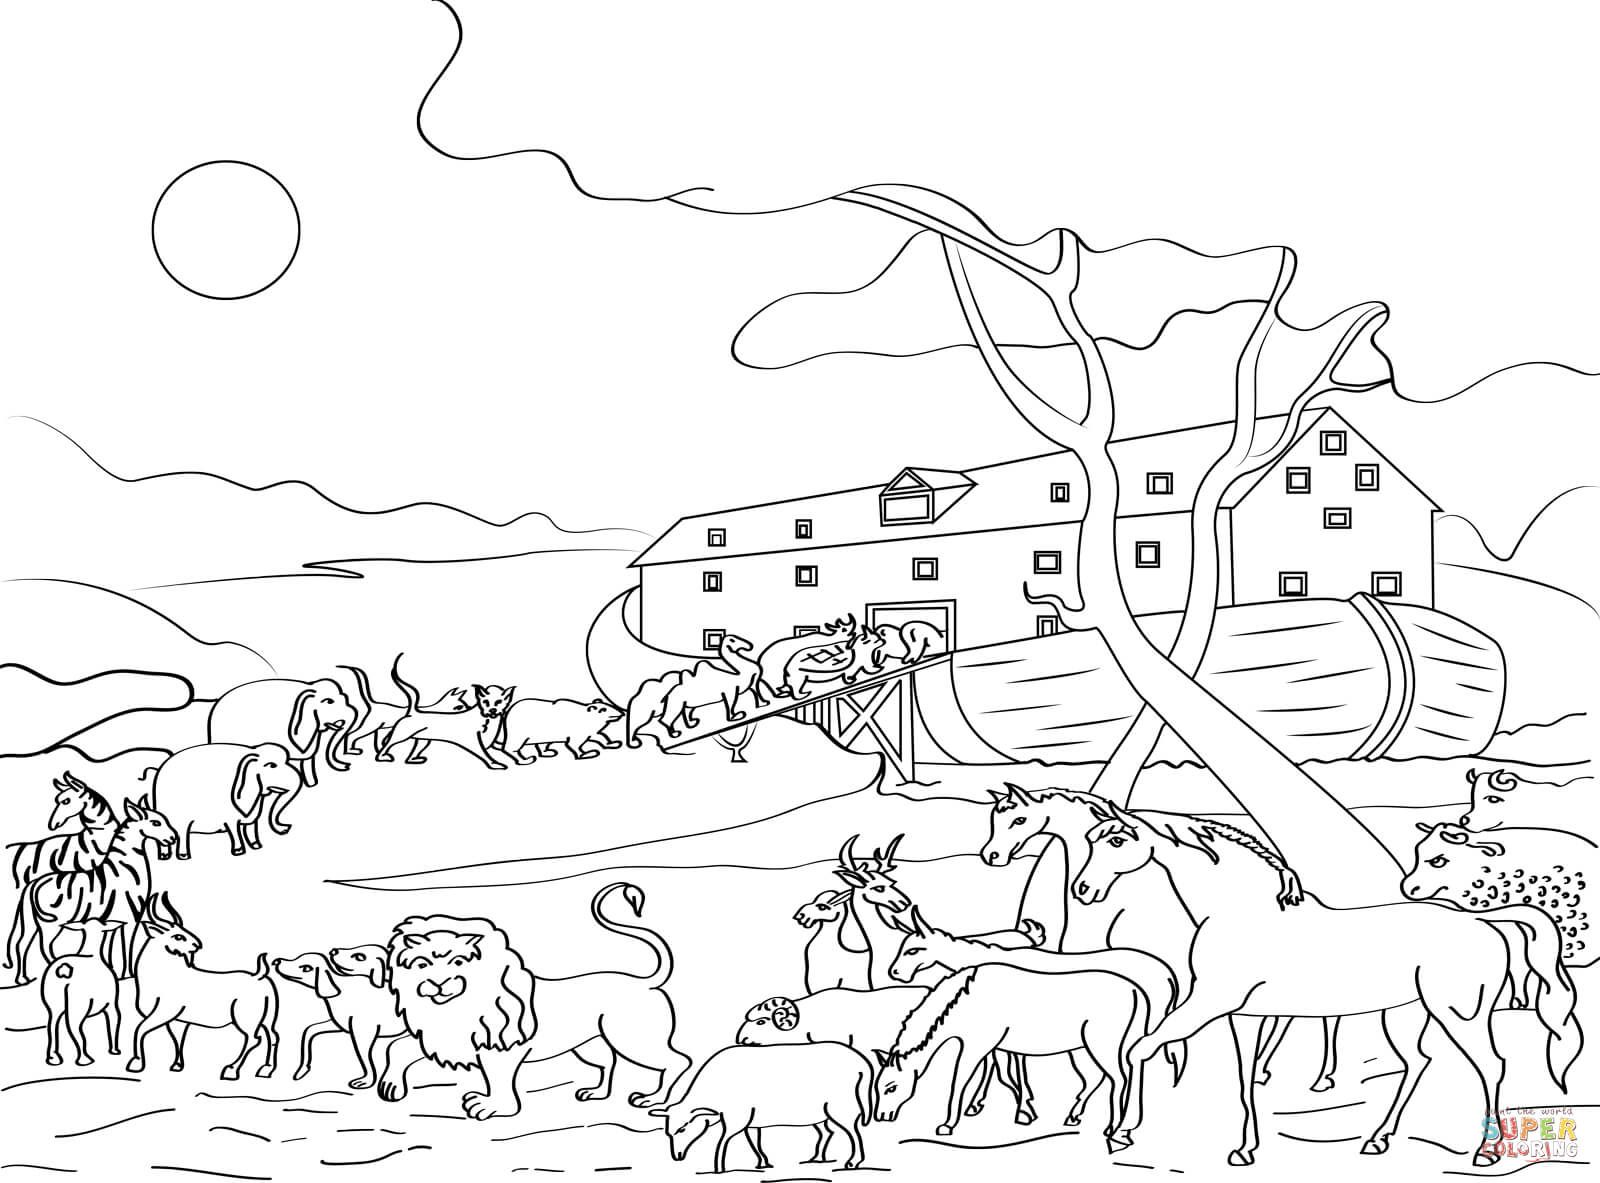 Animals Loading Noah S Ark Coloring Page Free Printable Coloring Animal Coloring Pages Family Coloring Pages Online Coloring Pages